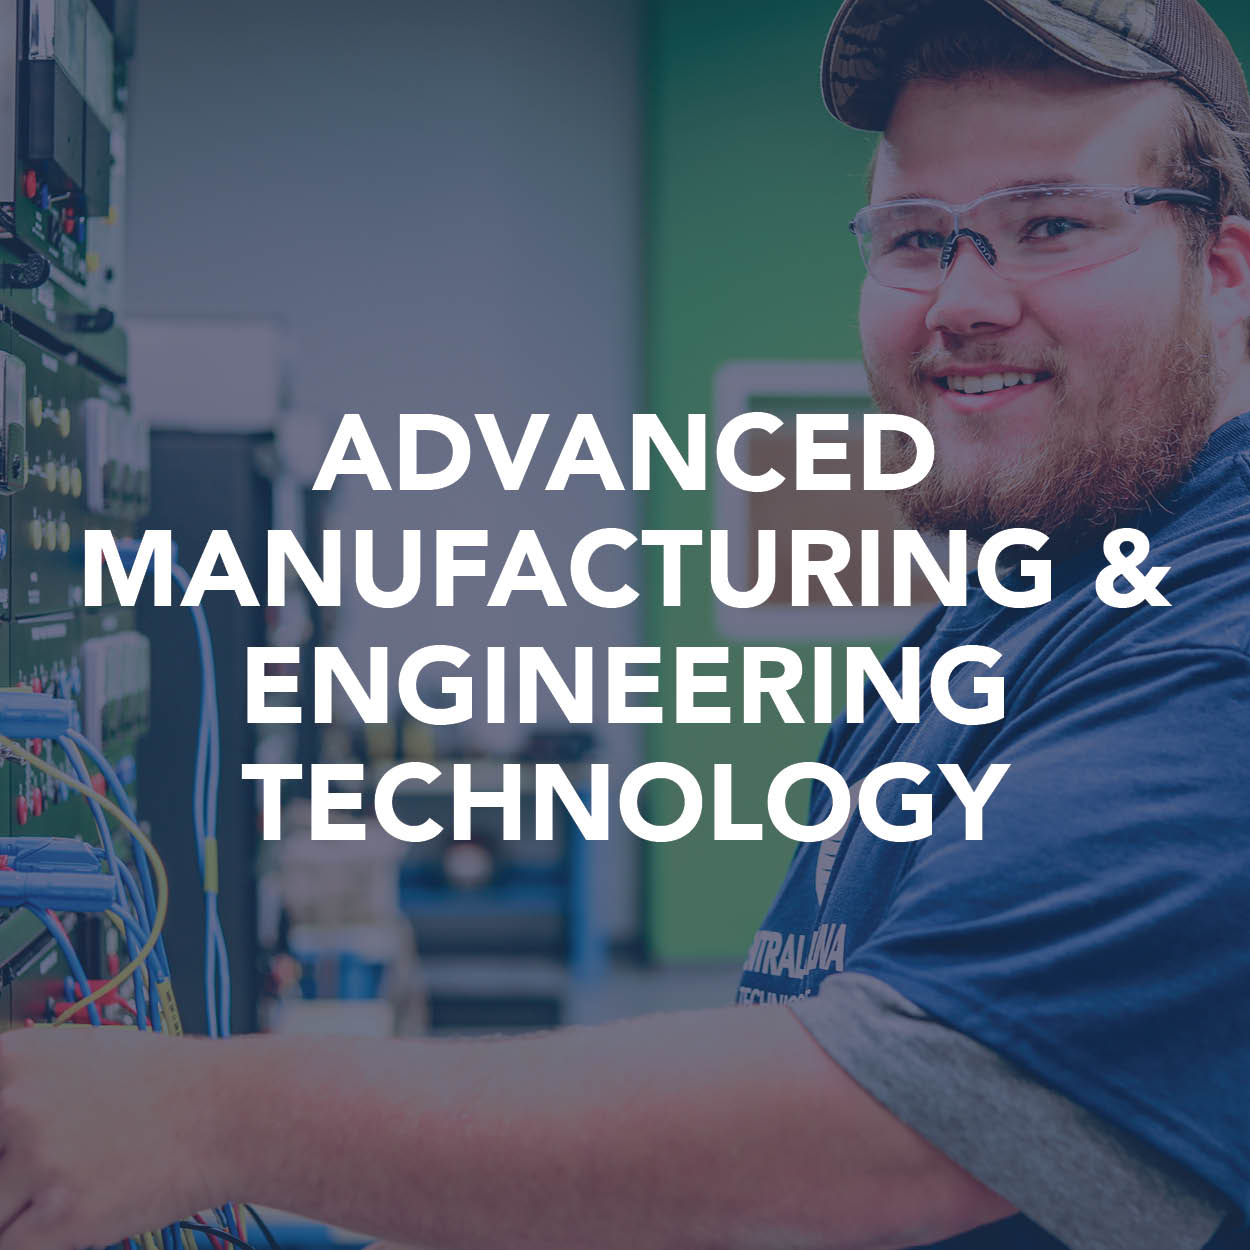 Advanced Manufacturing & Engineering Technology